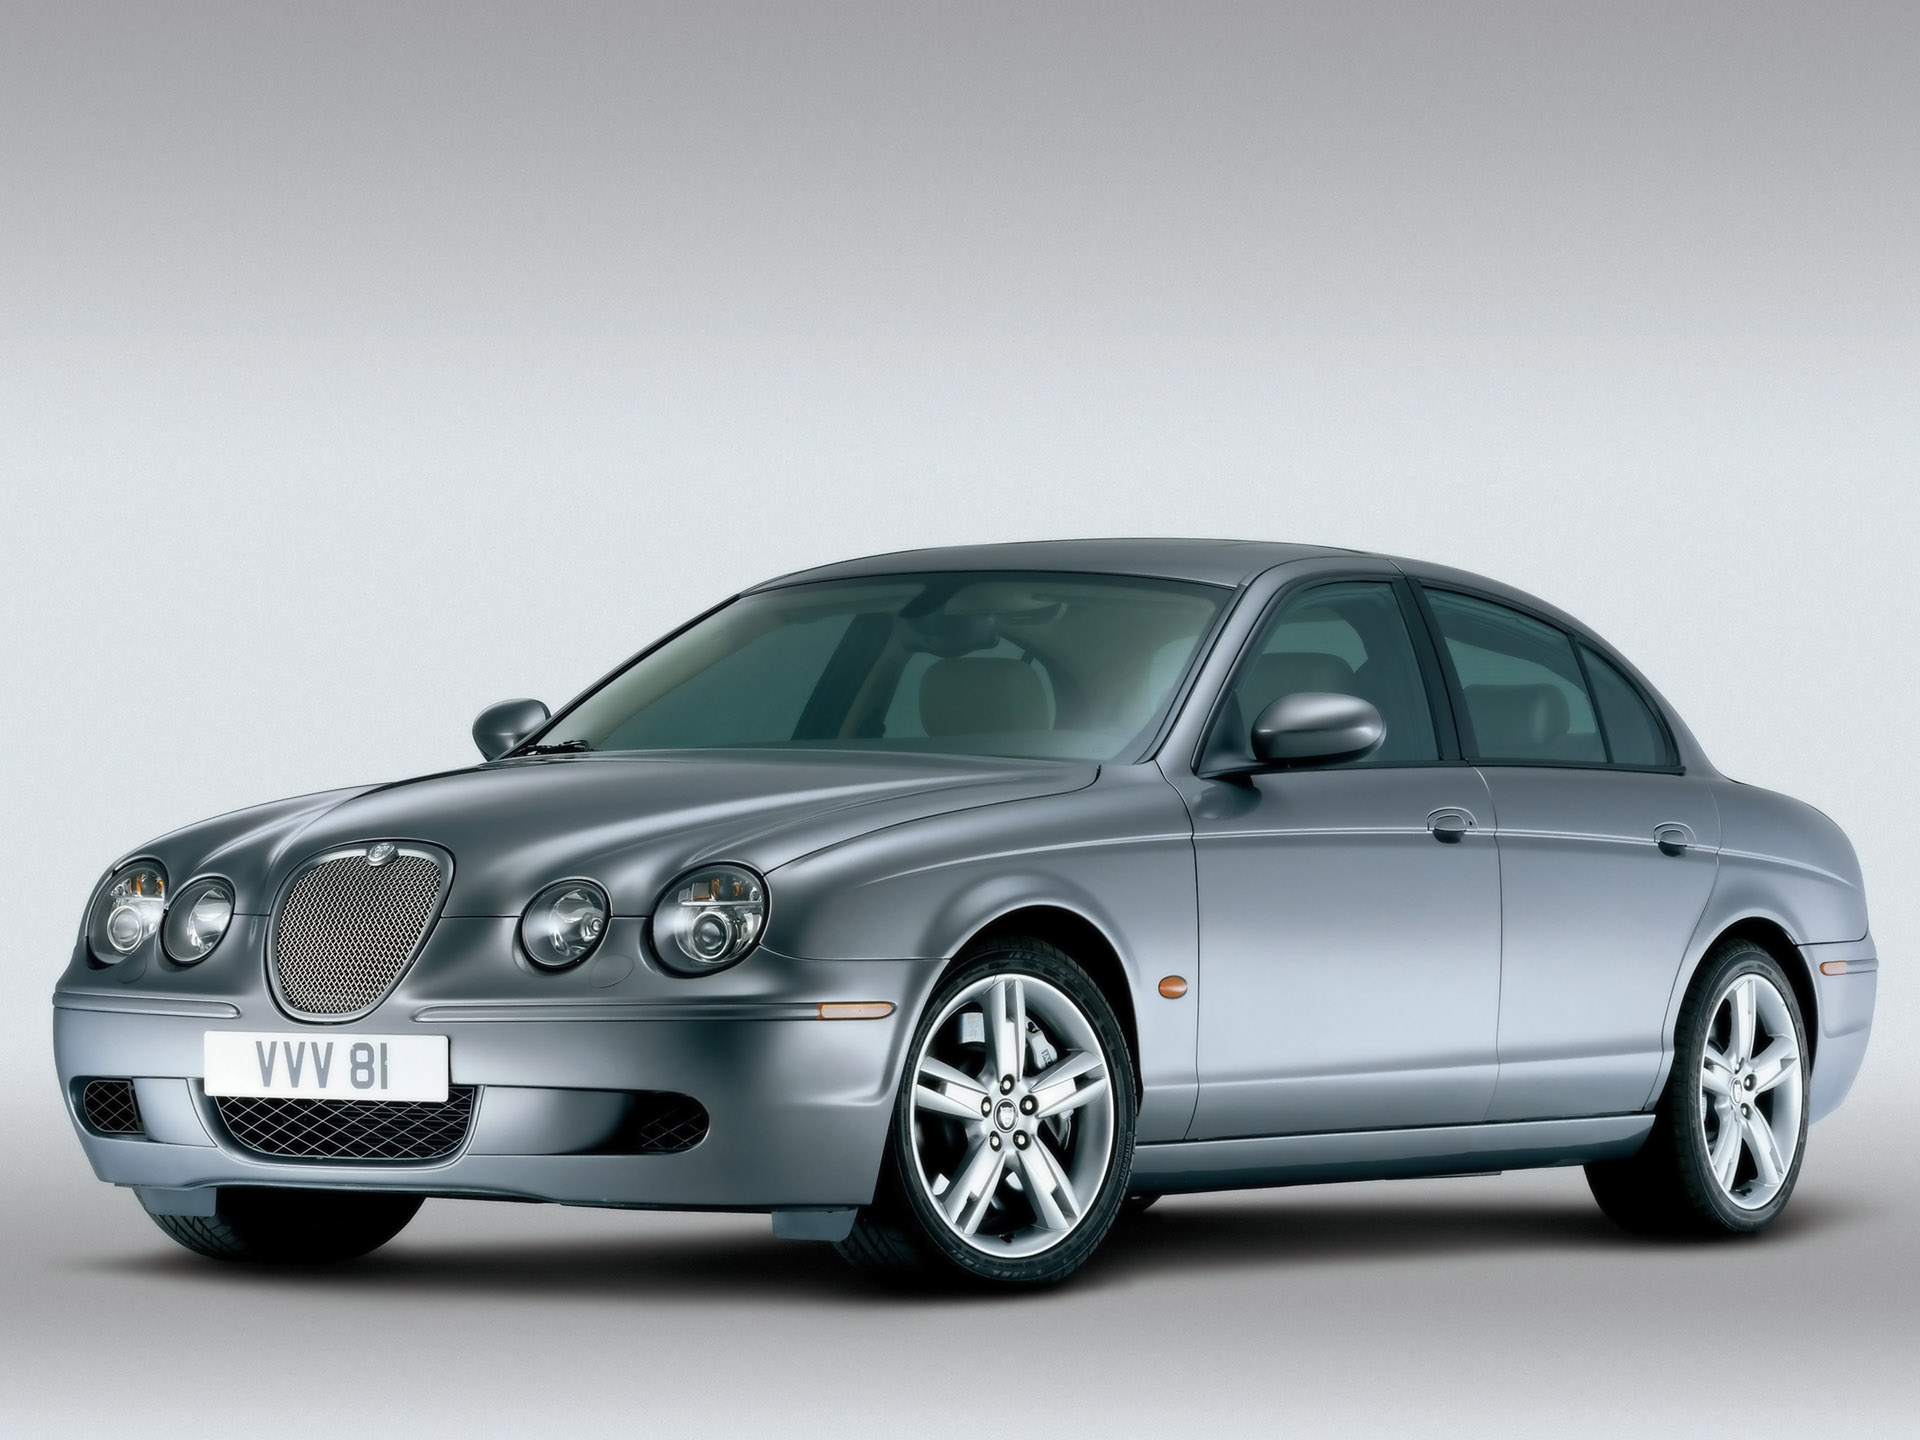 2005 Jaguar S-type #1